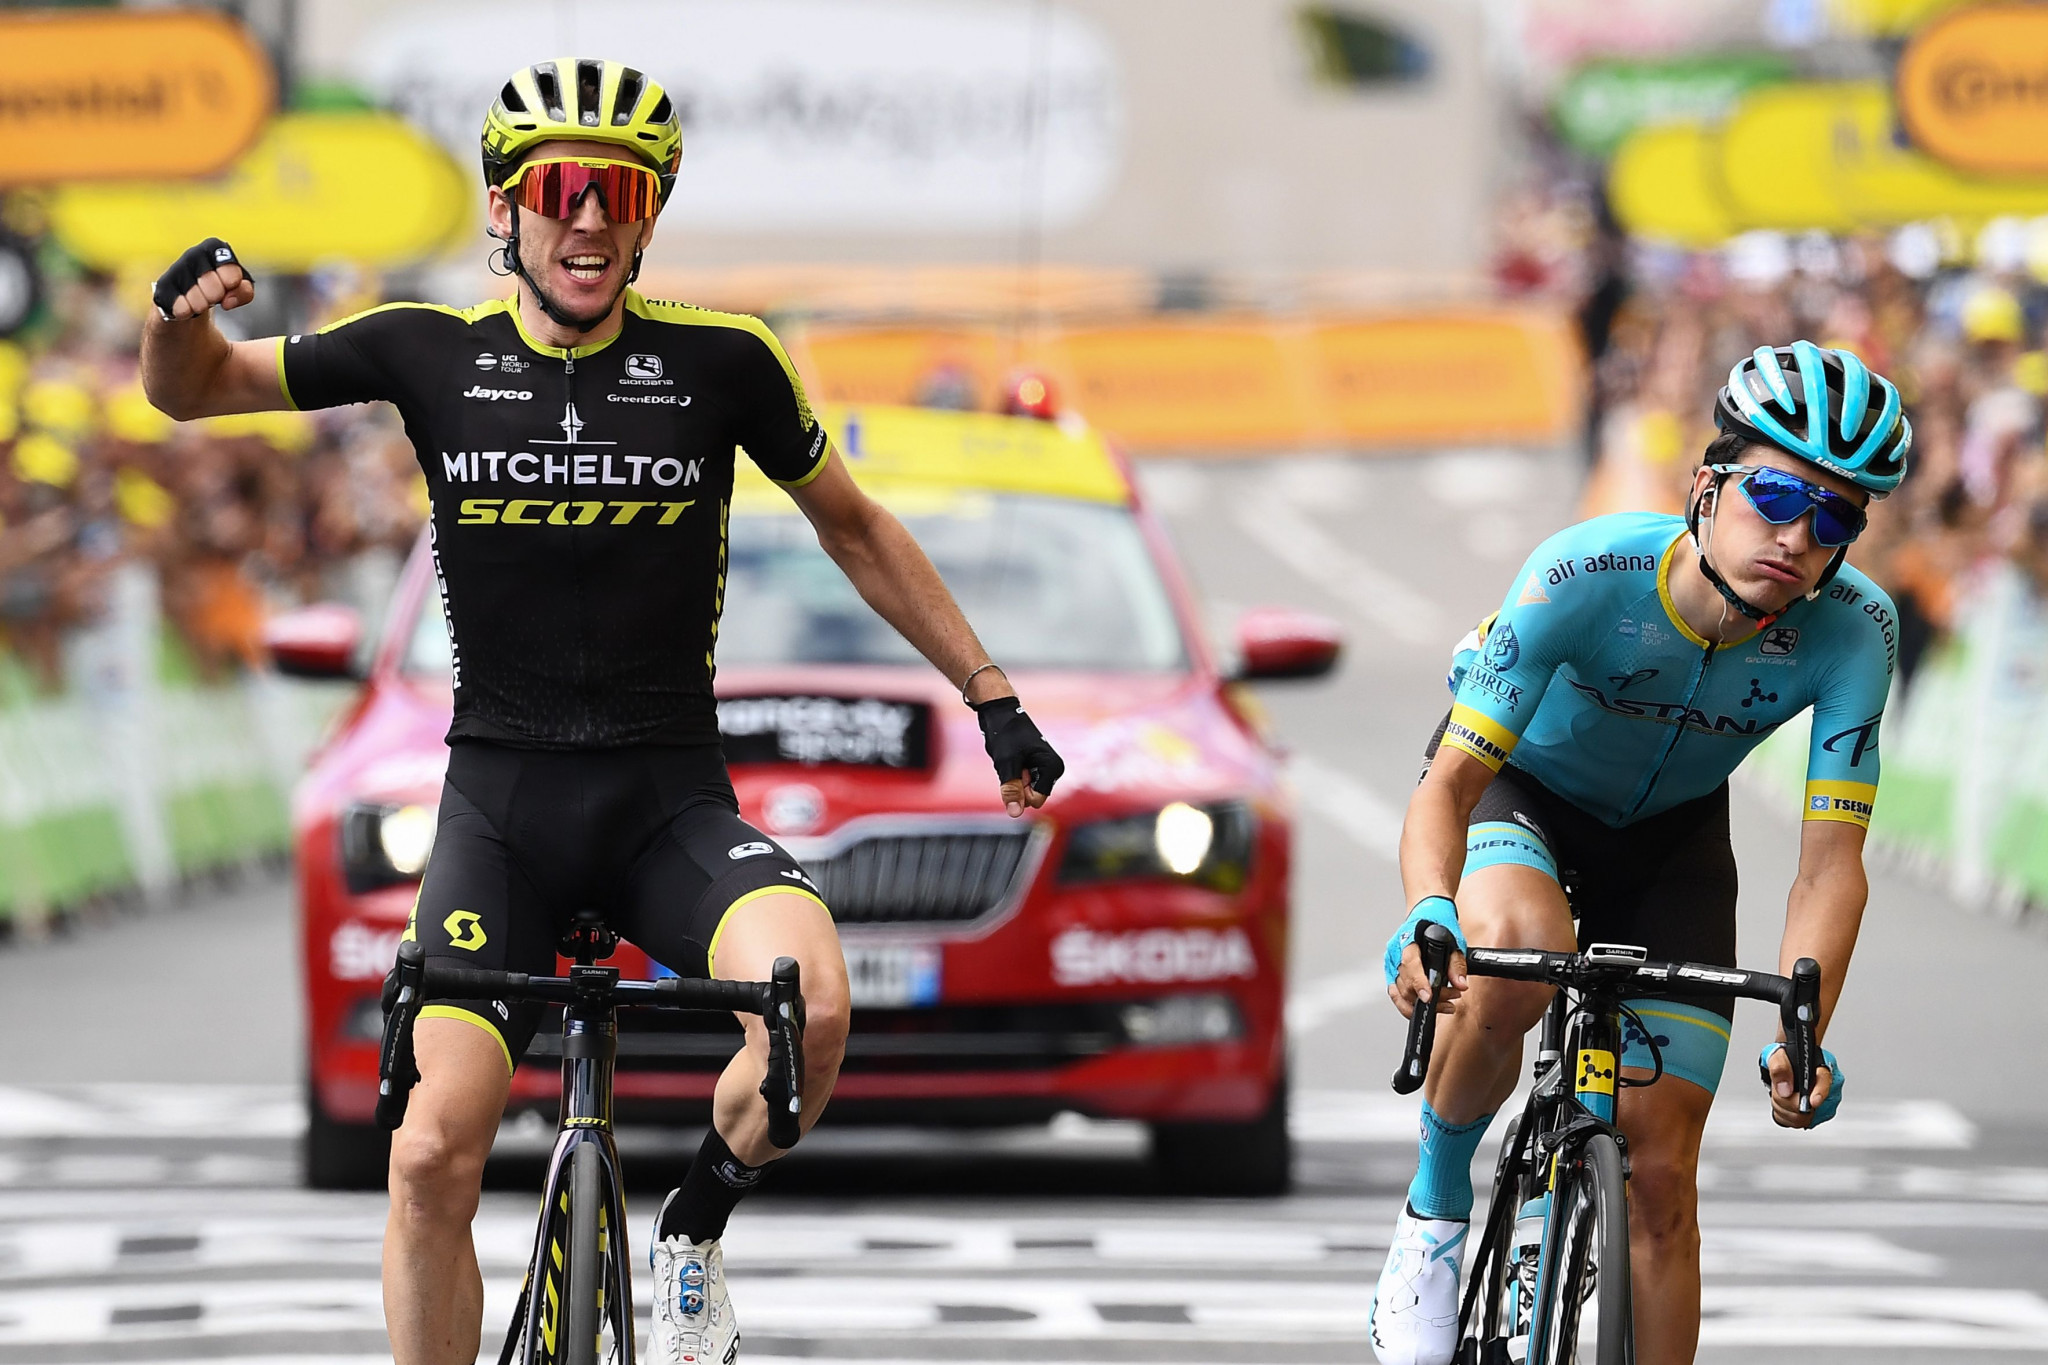 Yates sprints to first Tour de France stage victory as Alaphilippe remains in yellow